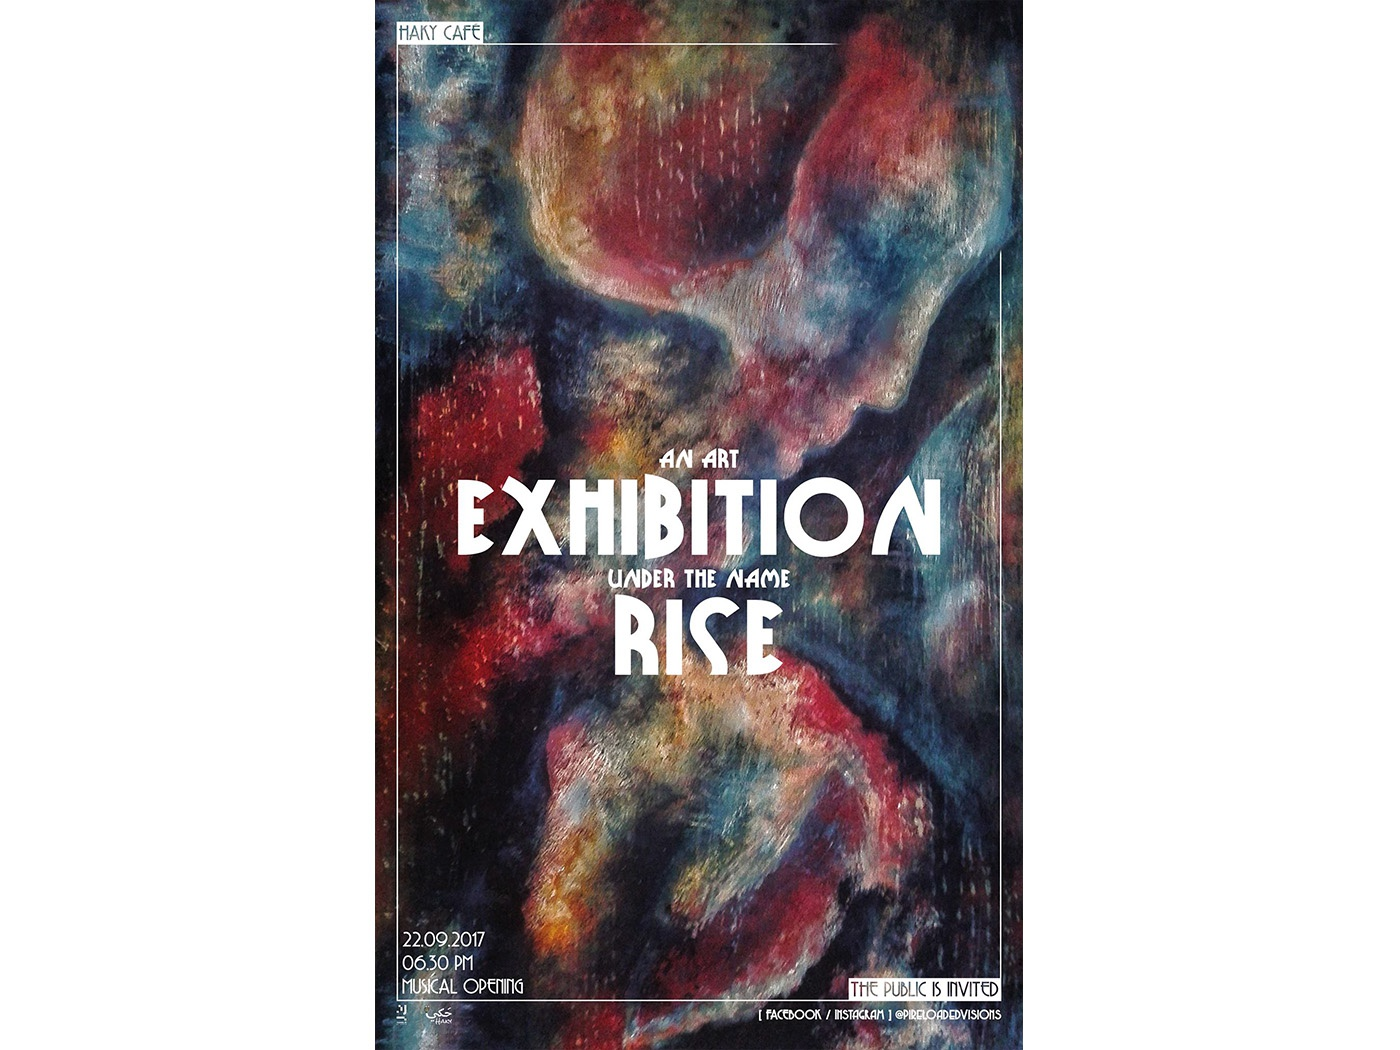 RISE Exhibition - Poster II rise painting drawing artistic artist art syria music exhibition poster design graphic graphic design